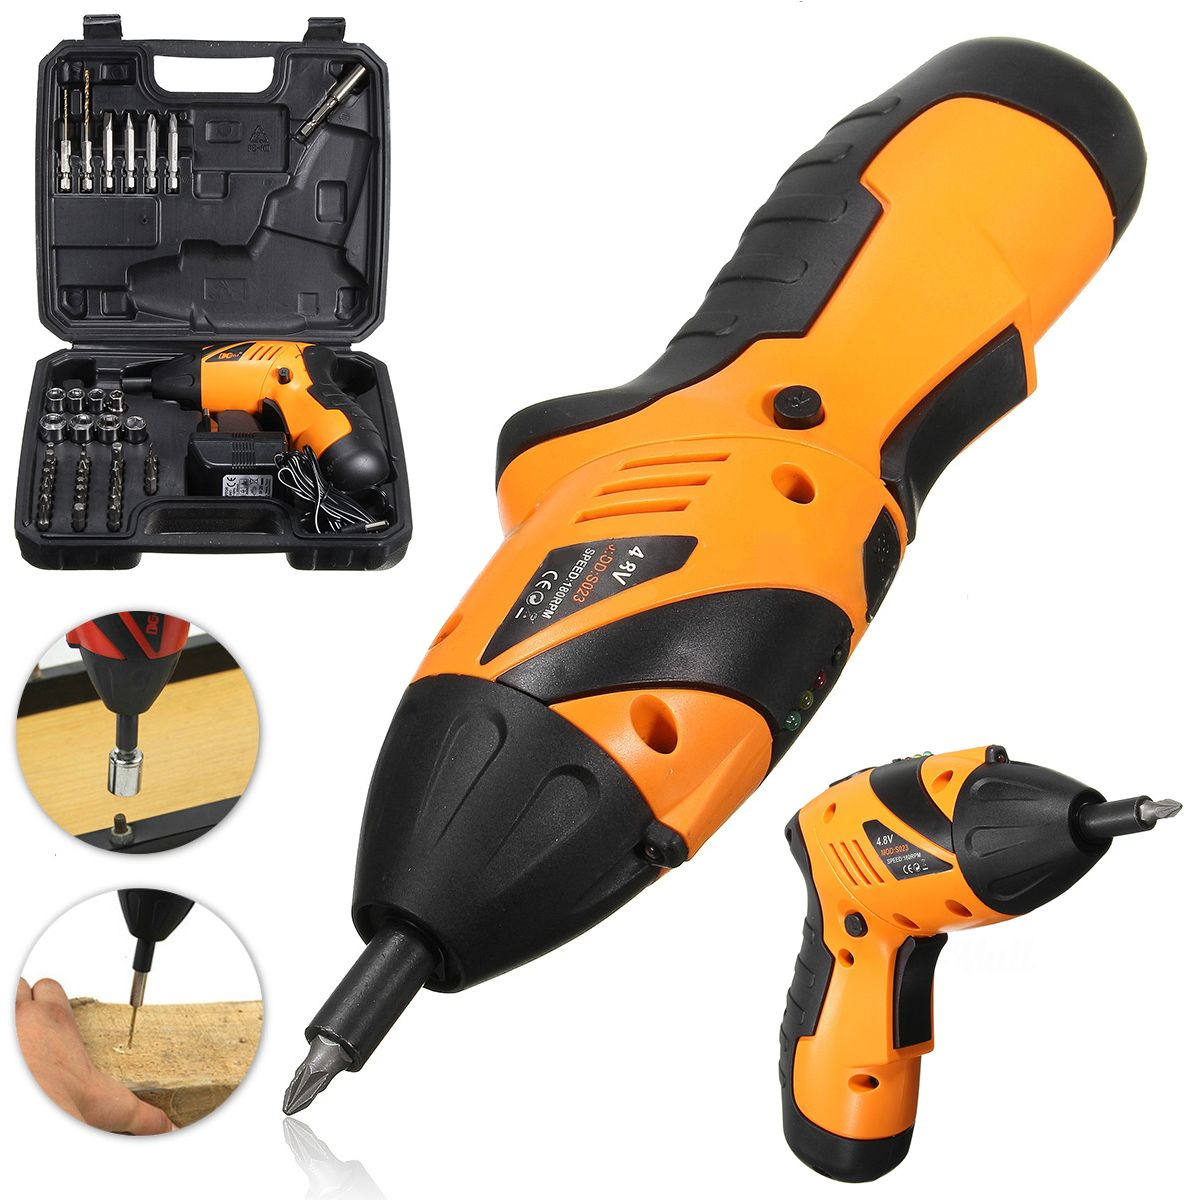 DWZ 45 in1 Power Tool Cordless Electric Screwdriver Drill Kit Set EU Plug workpro 18 in 1 magnetic screwdriver tool set hand tool kit with rack workshop master